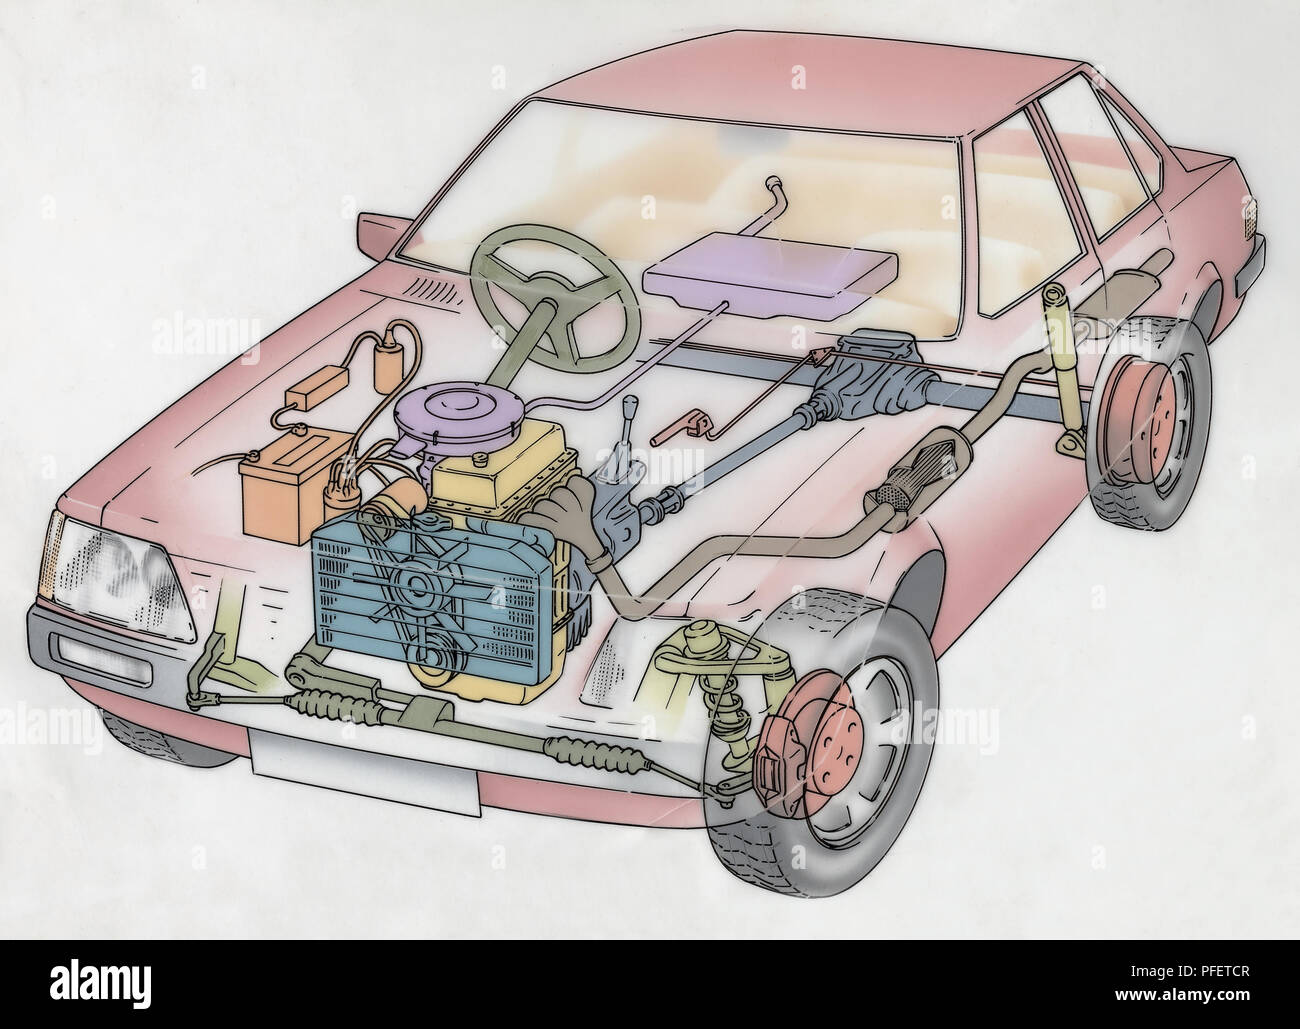 hight resolution of artwork cross section diagram of a car showing the engine radiator artwork cross section diagram